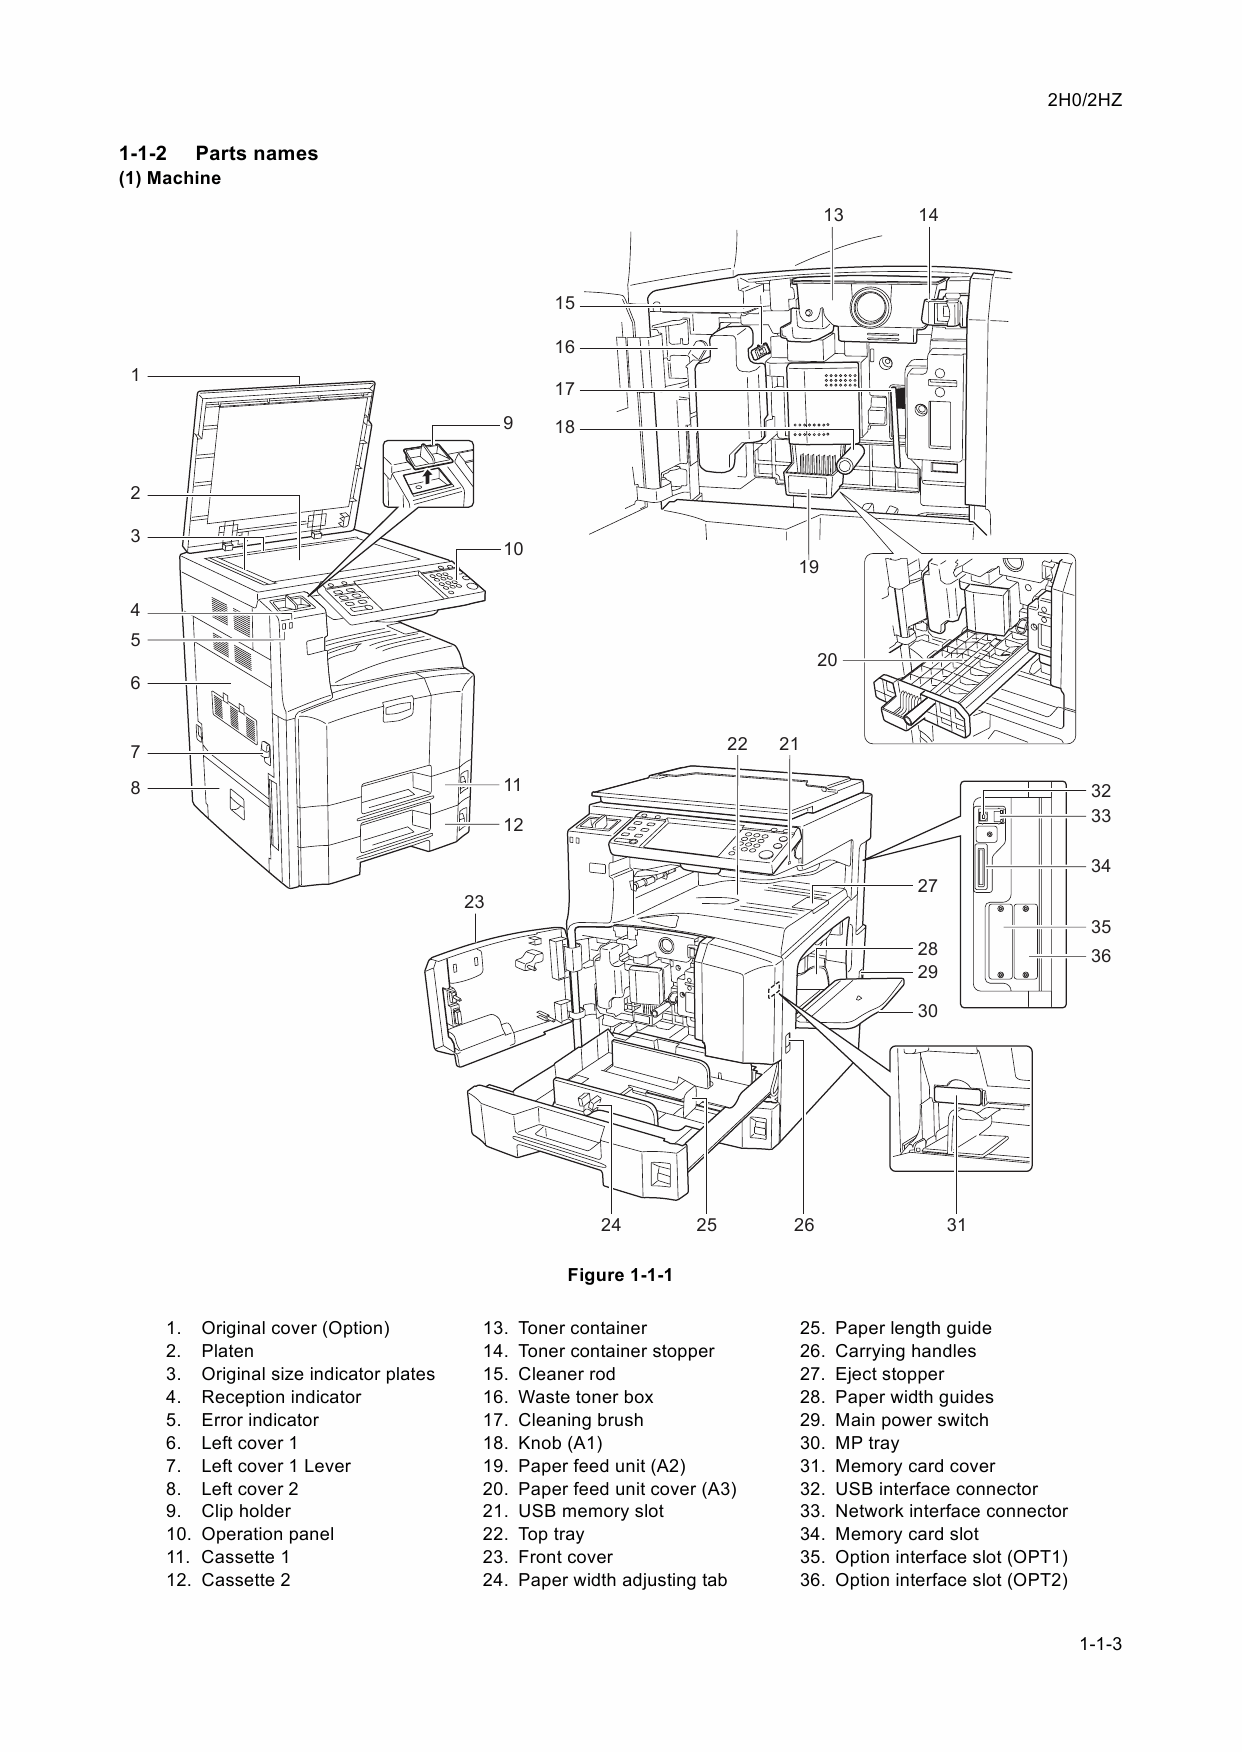 KYOCERA Copier KM-2560 3060 Service Manual-2